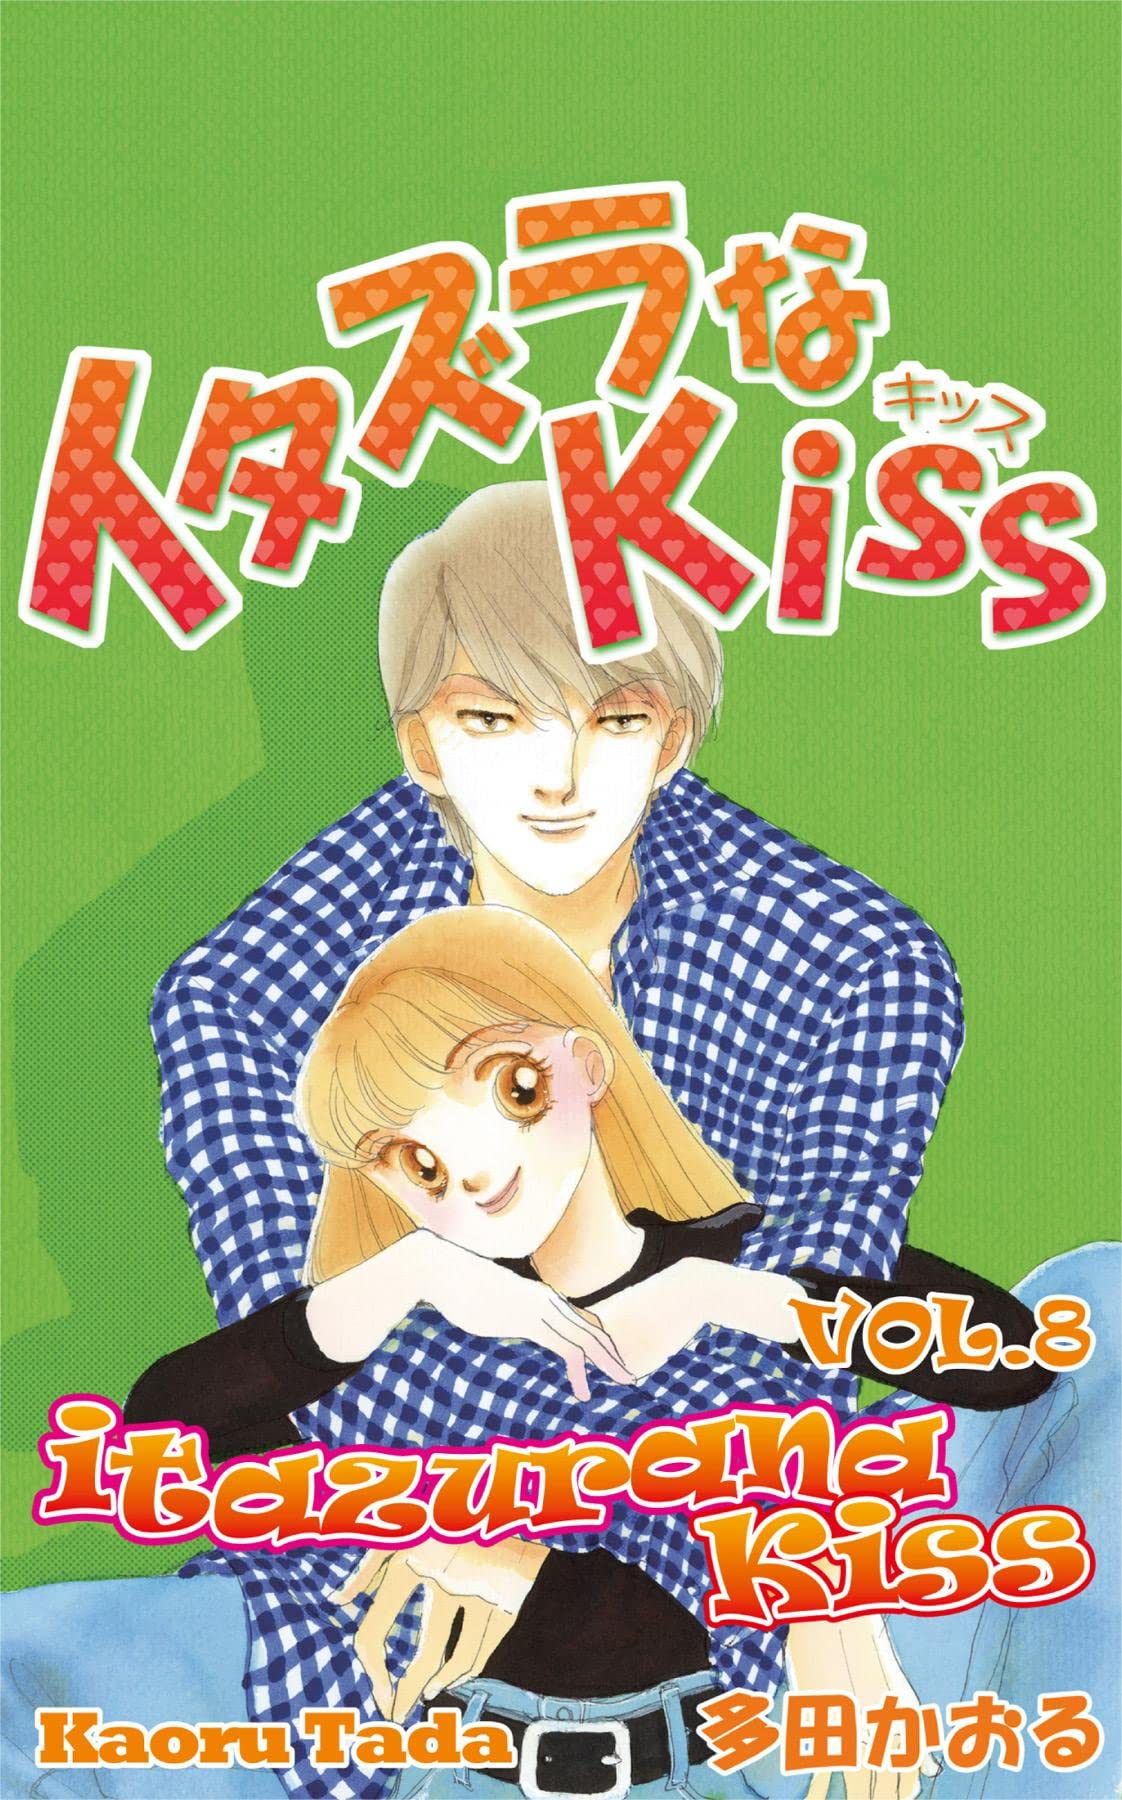 itazurana Kiss Vol. 8